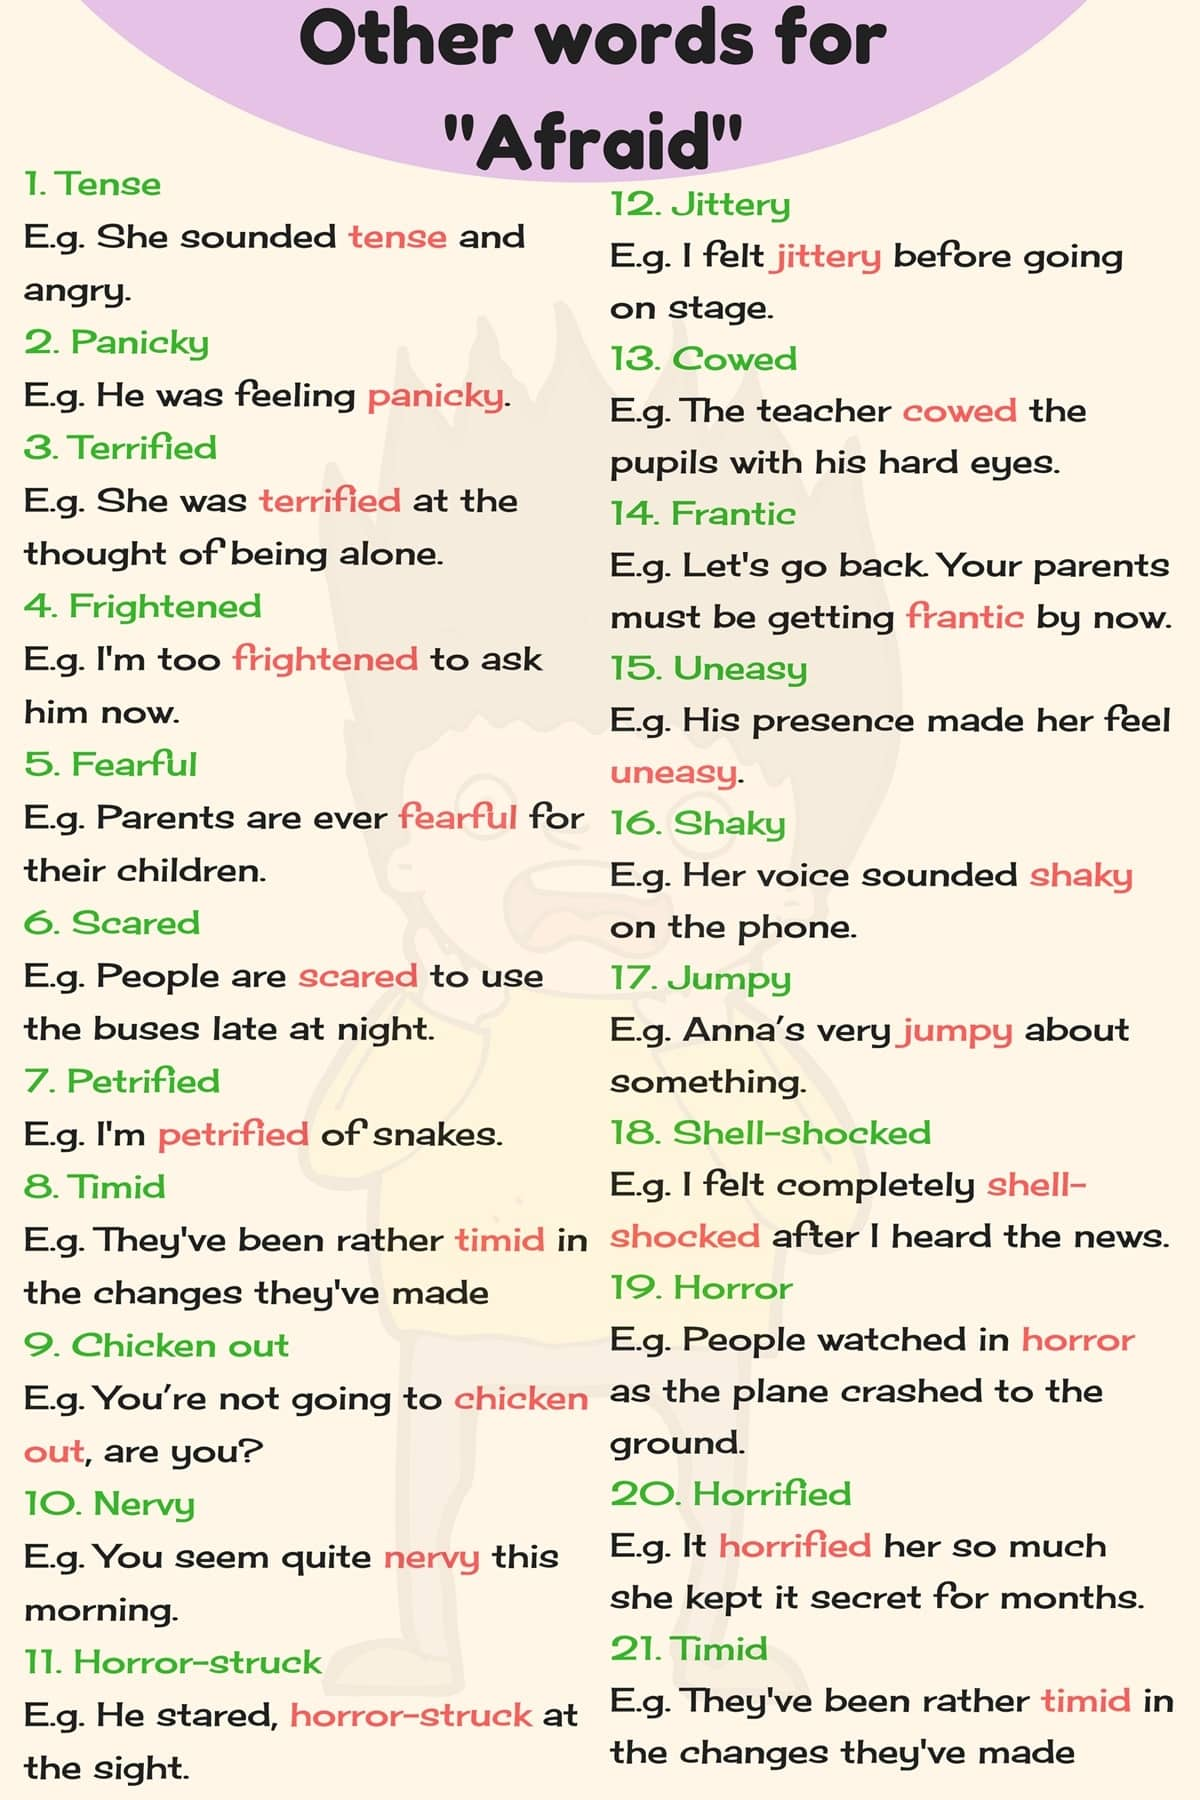 Words for AFRAID in English